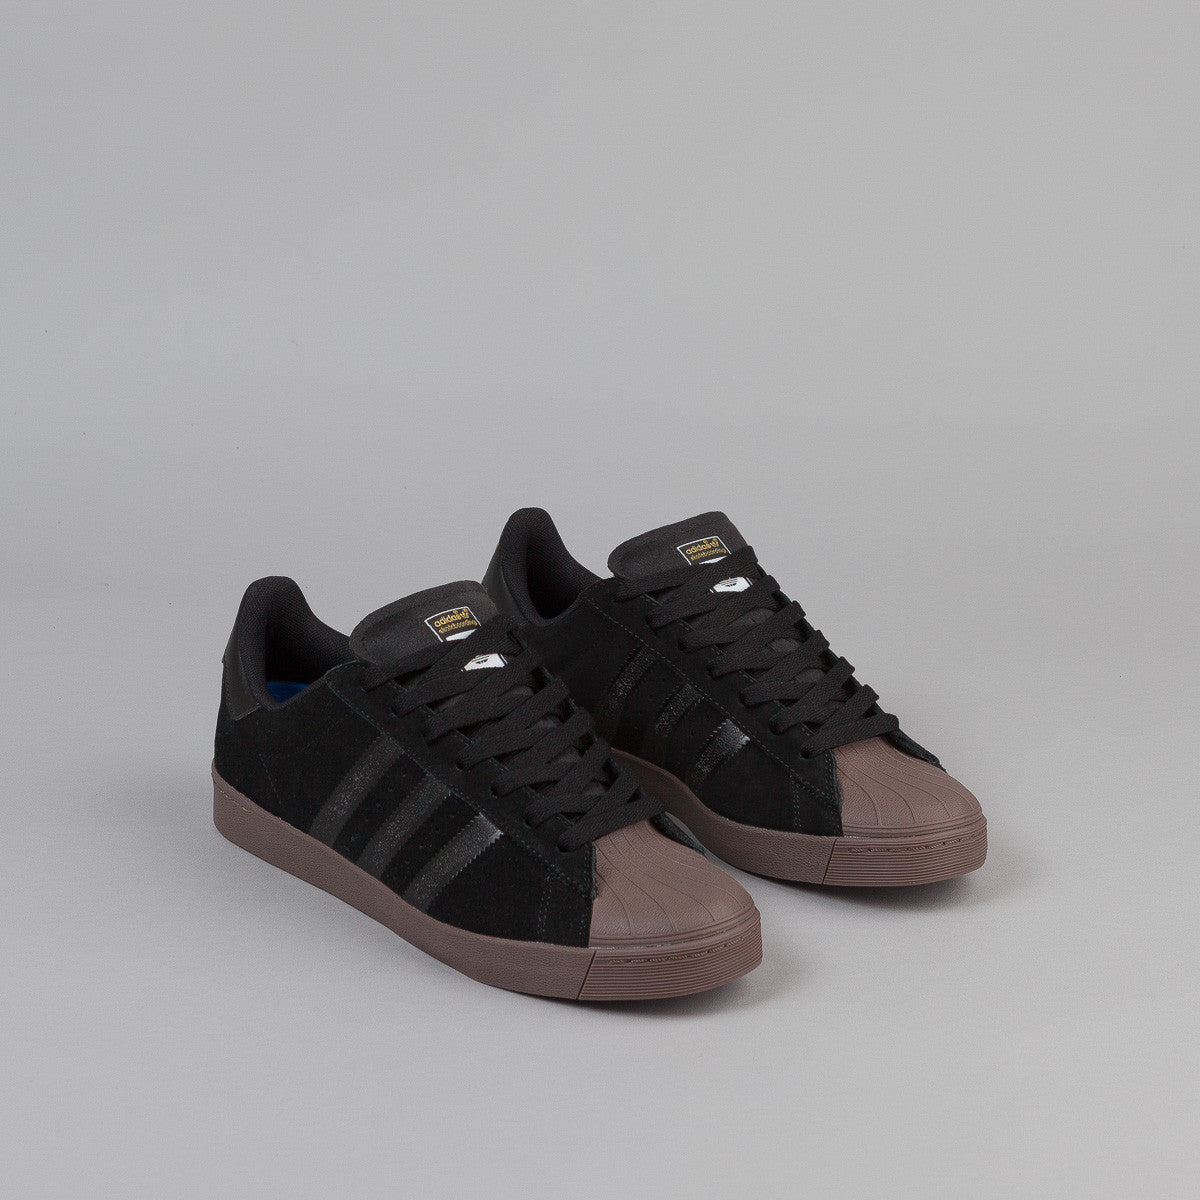 Cheap Adidas eqt support adv core blackturbo, Cheap Adidas originals superstar 2